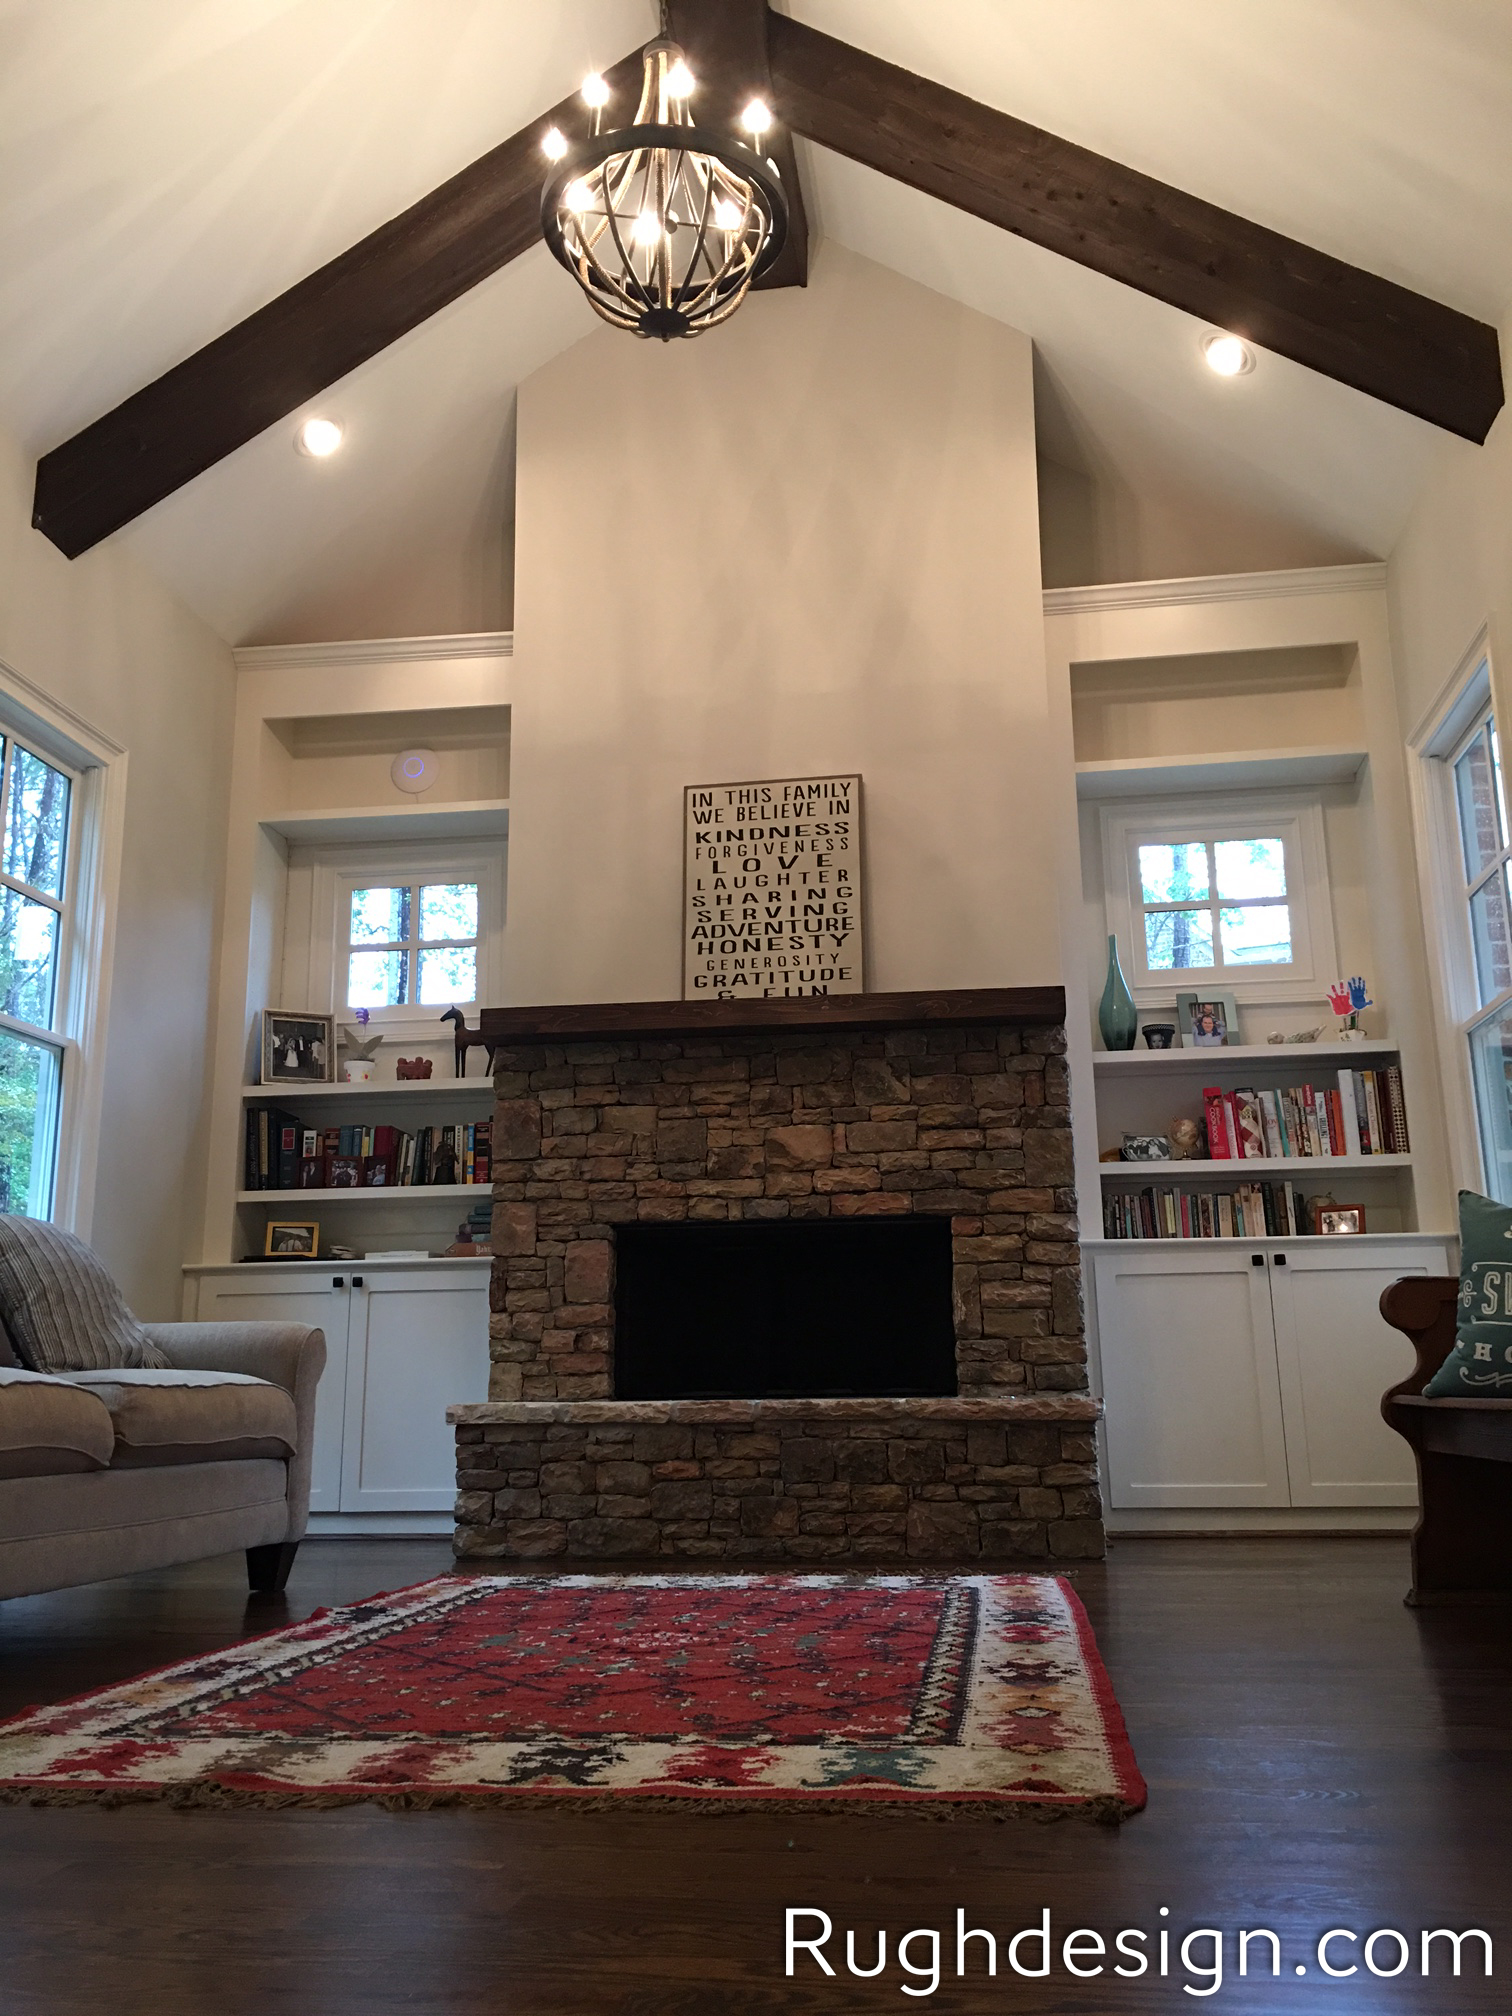 Agreeable Gray SW 7029 in living room